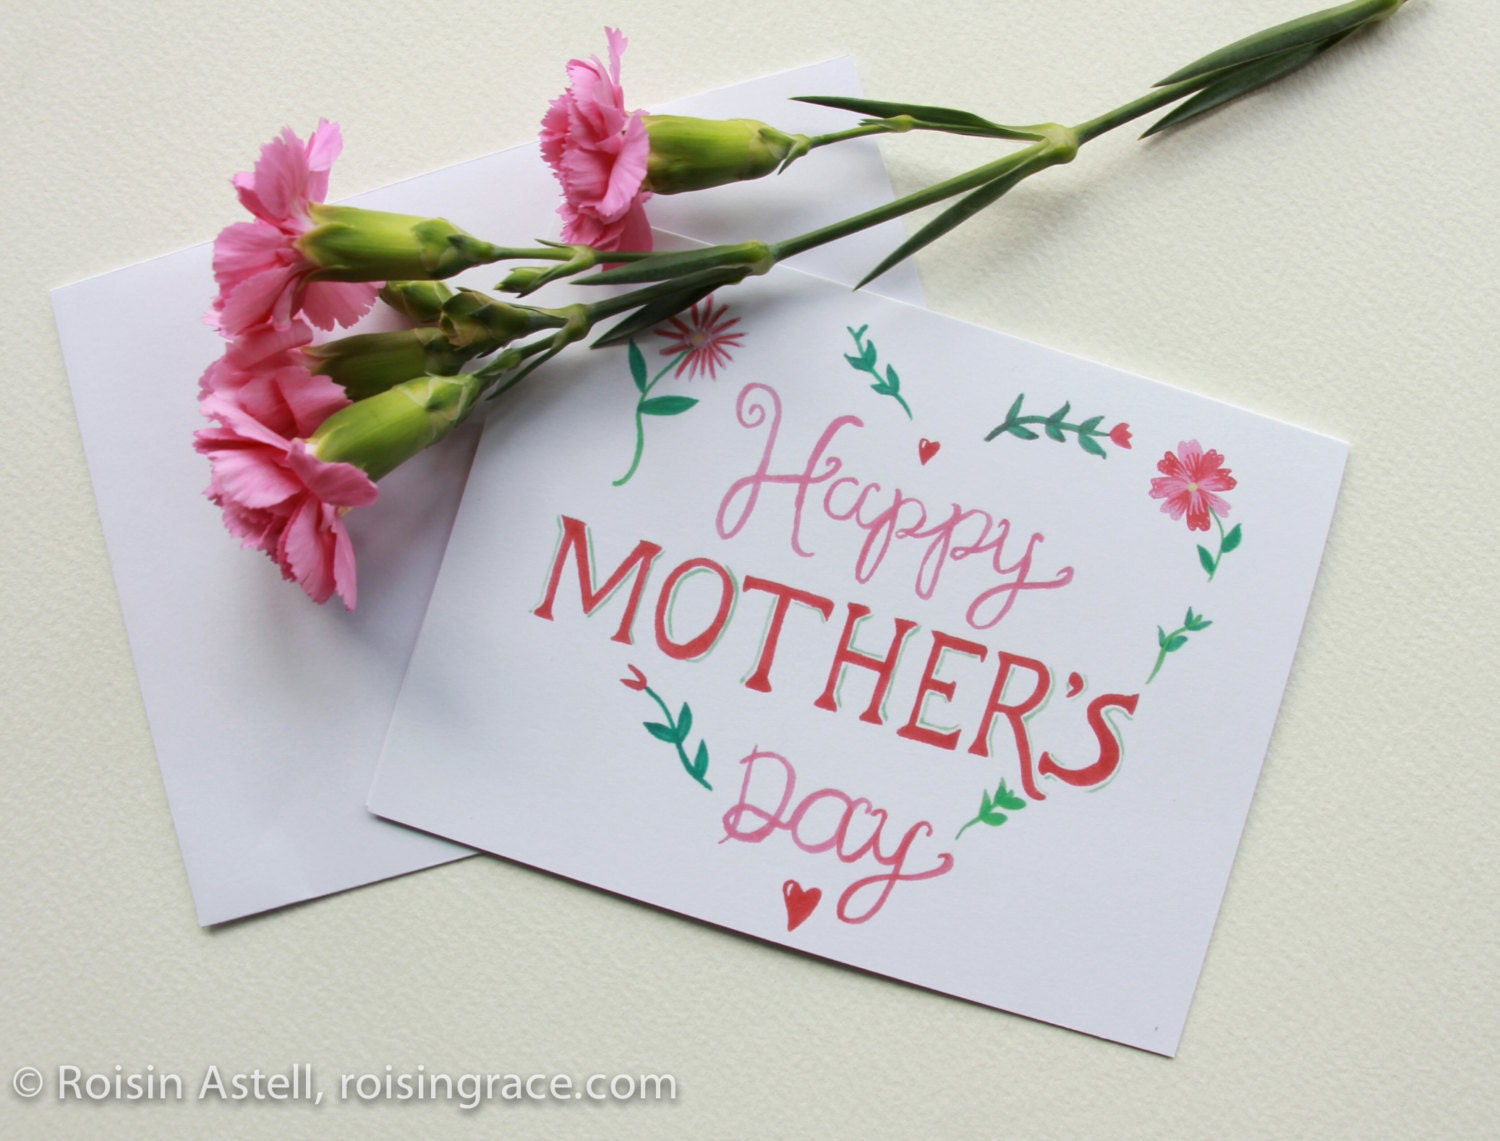 Etsy Happy Mother's Day hand-painted greeting card - original watercolour illustrated card